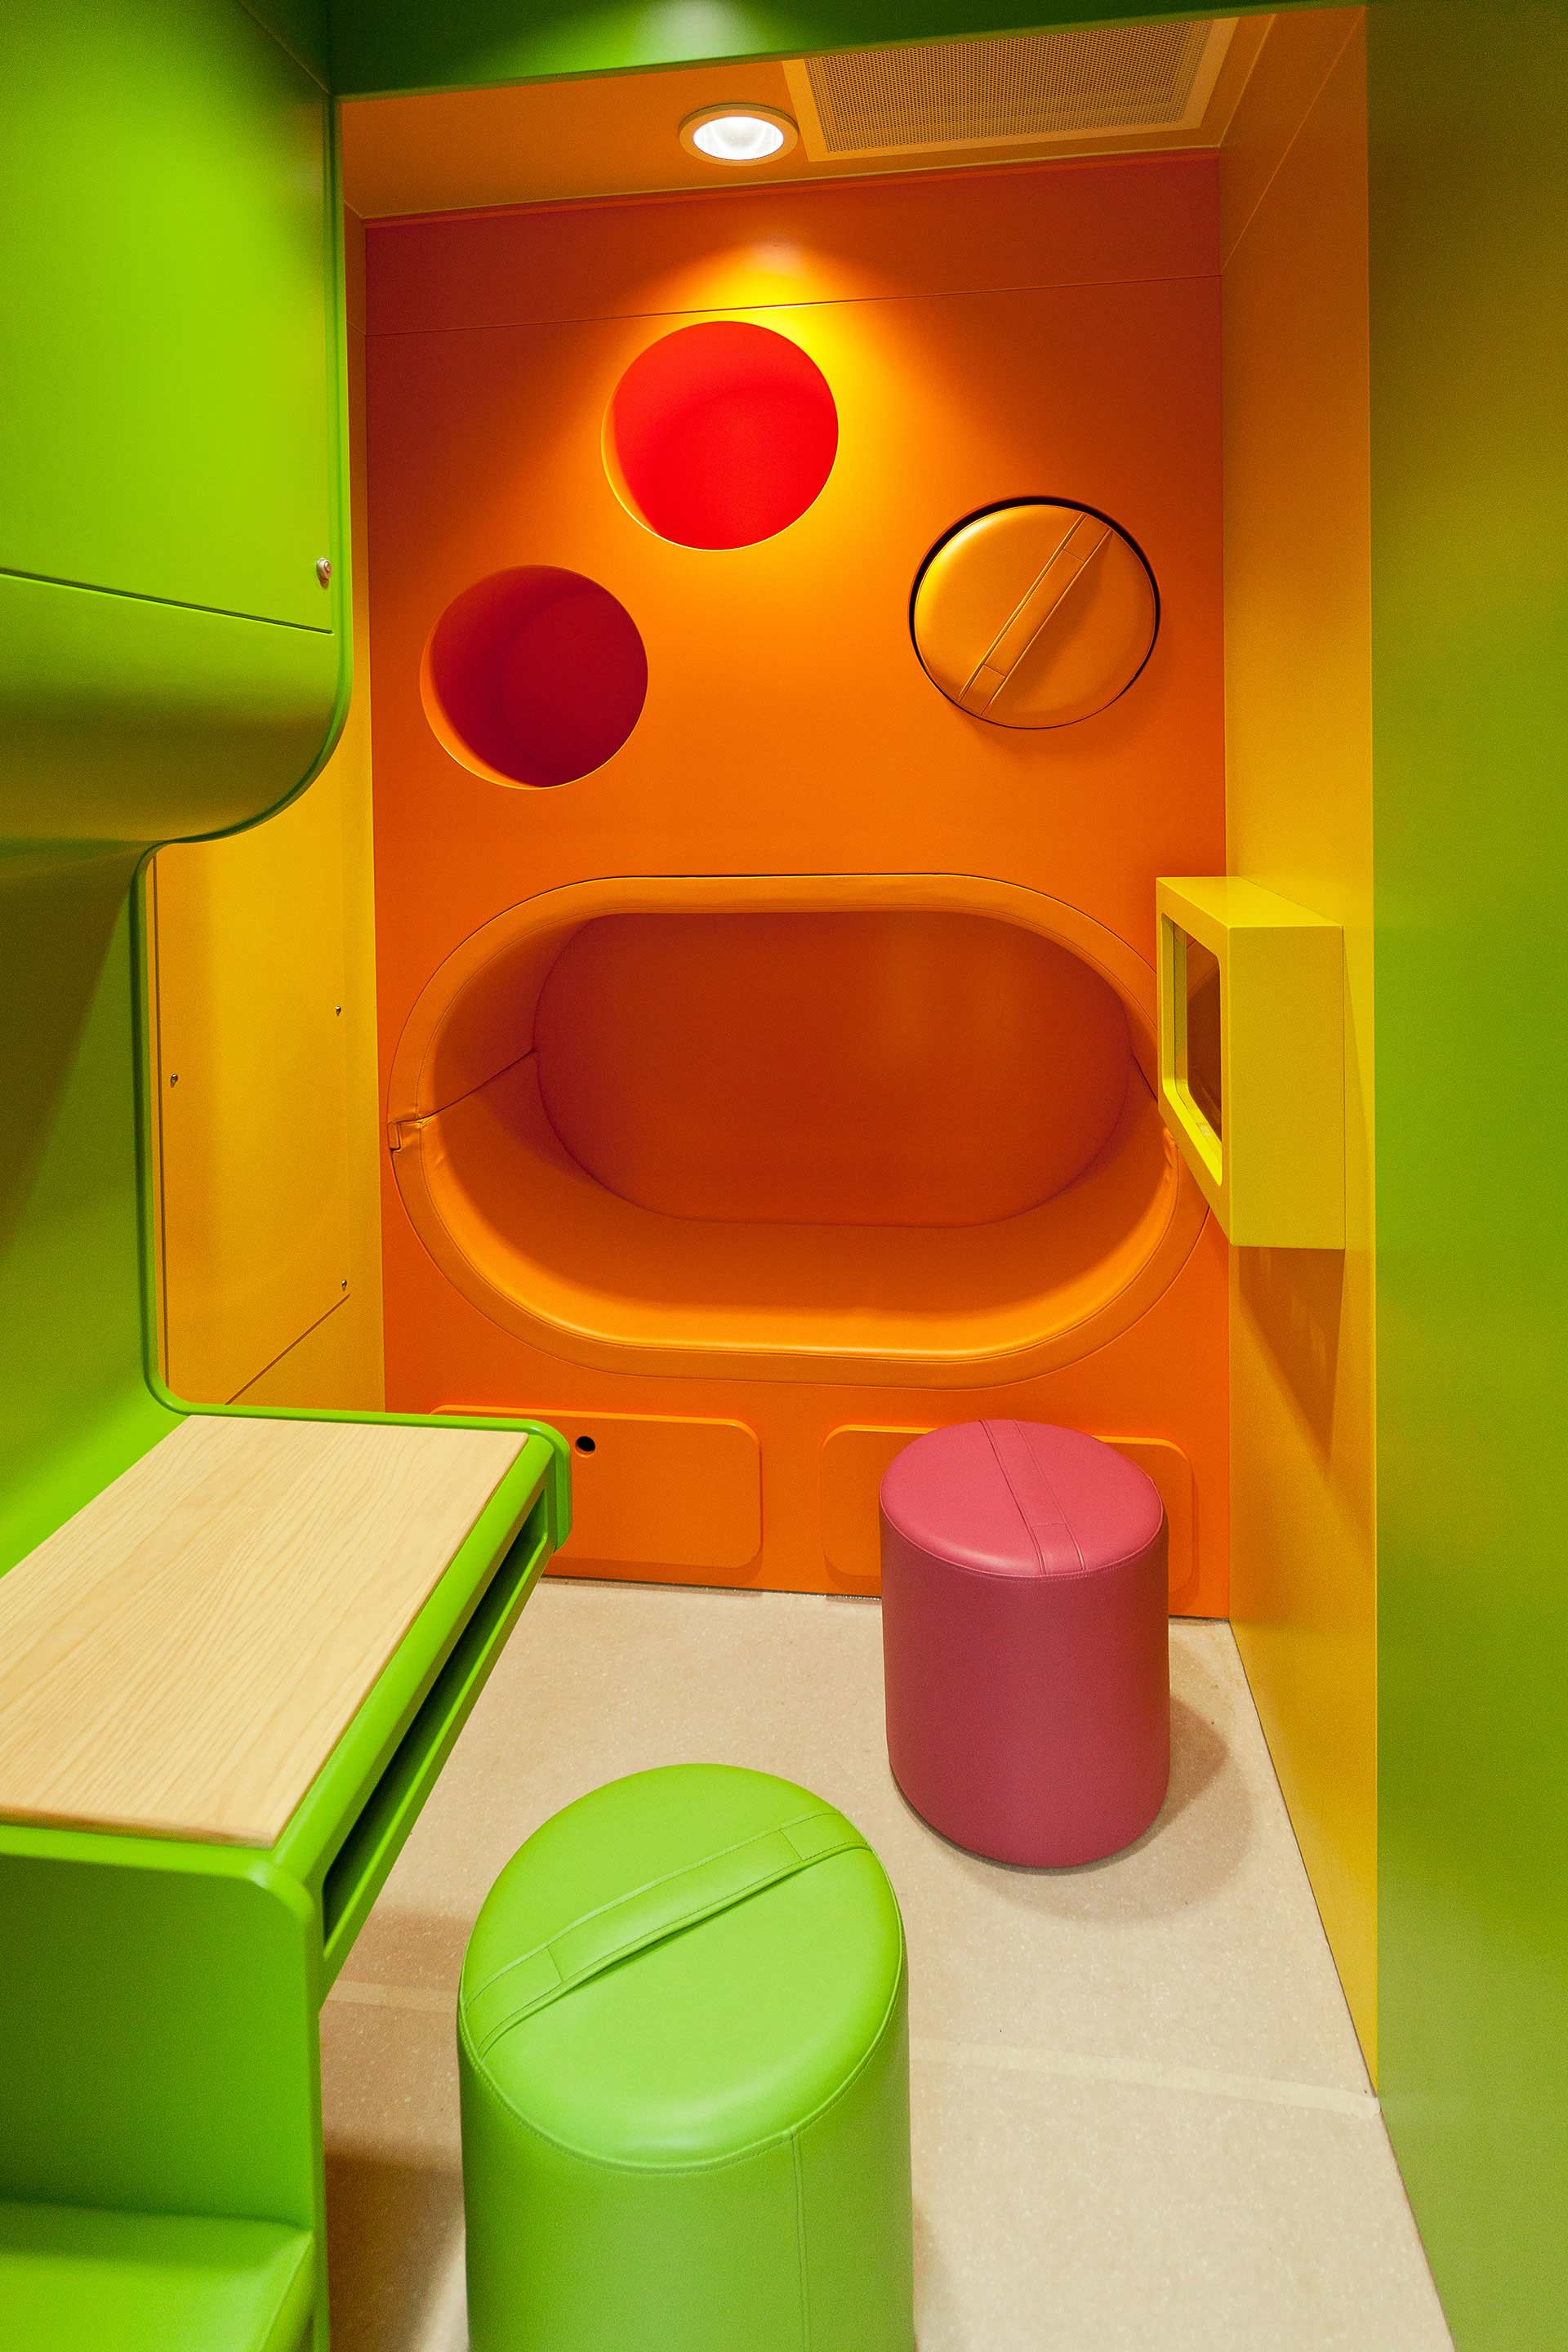 Coloured slices define play and infection control upholstered seating areas